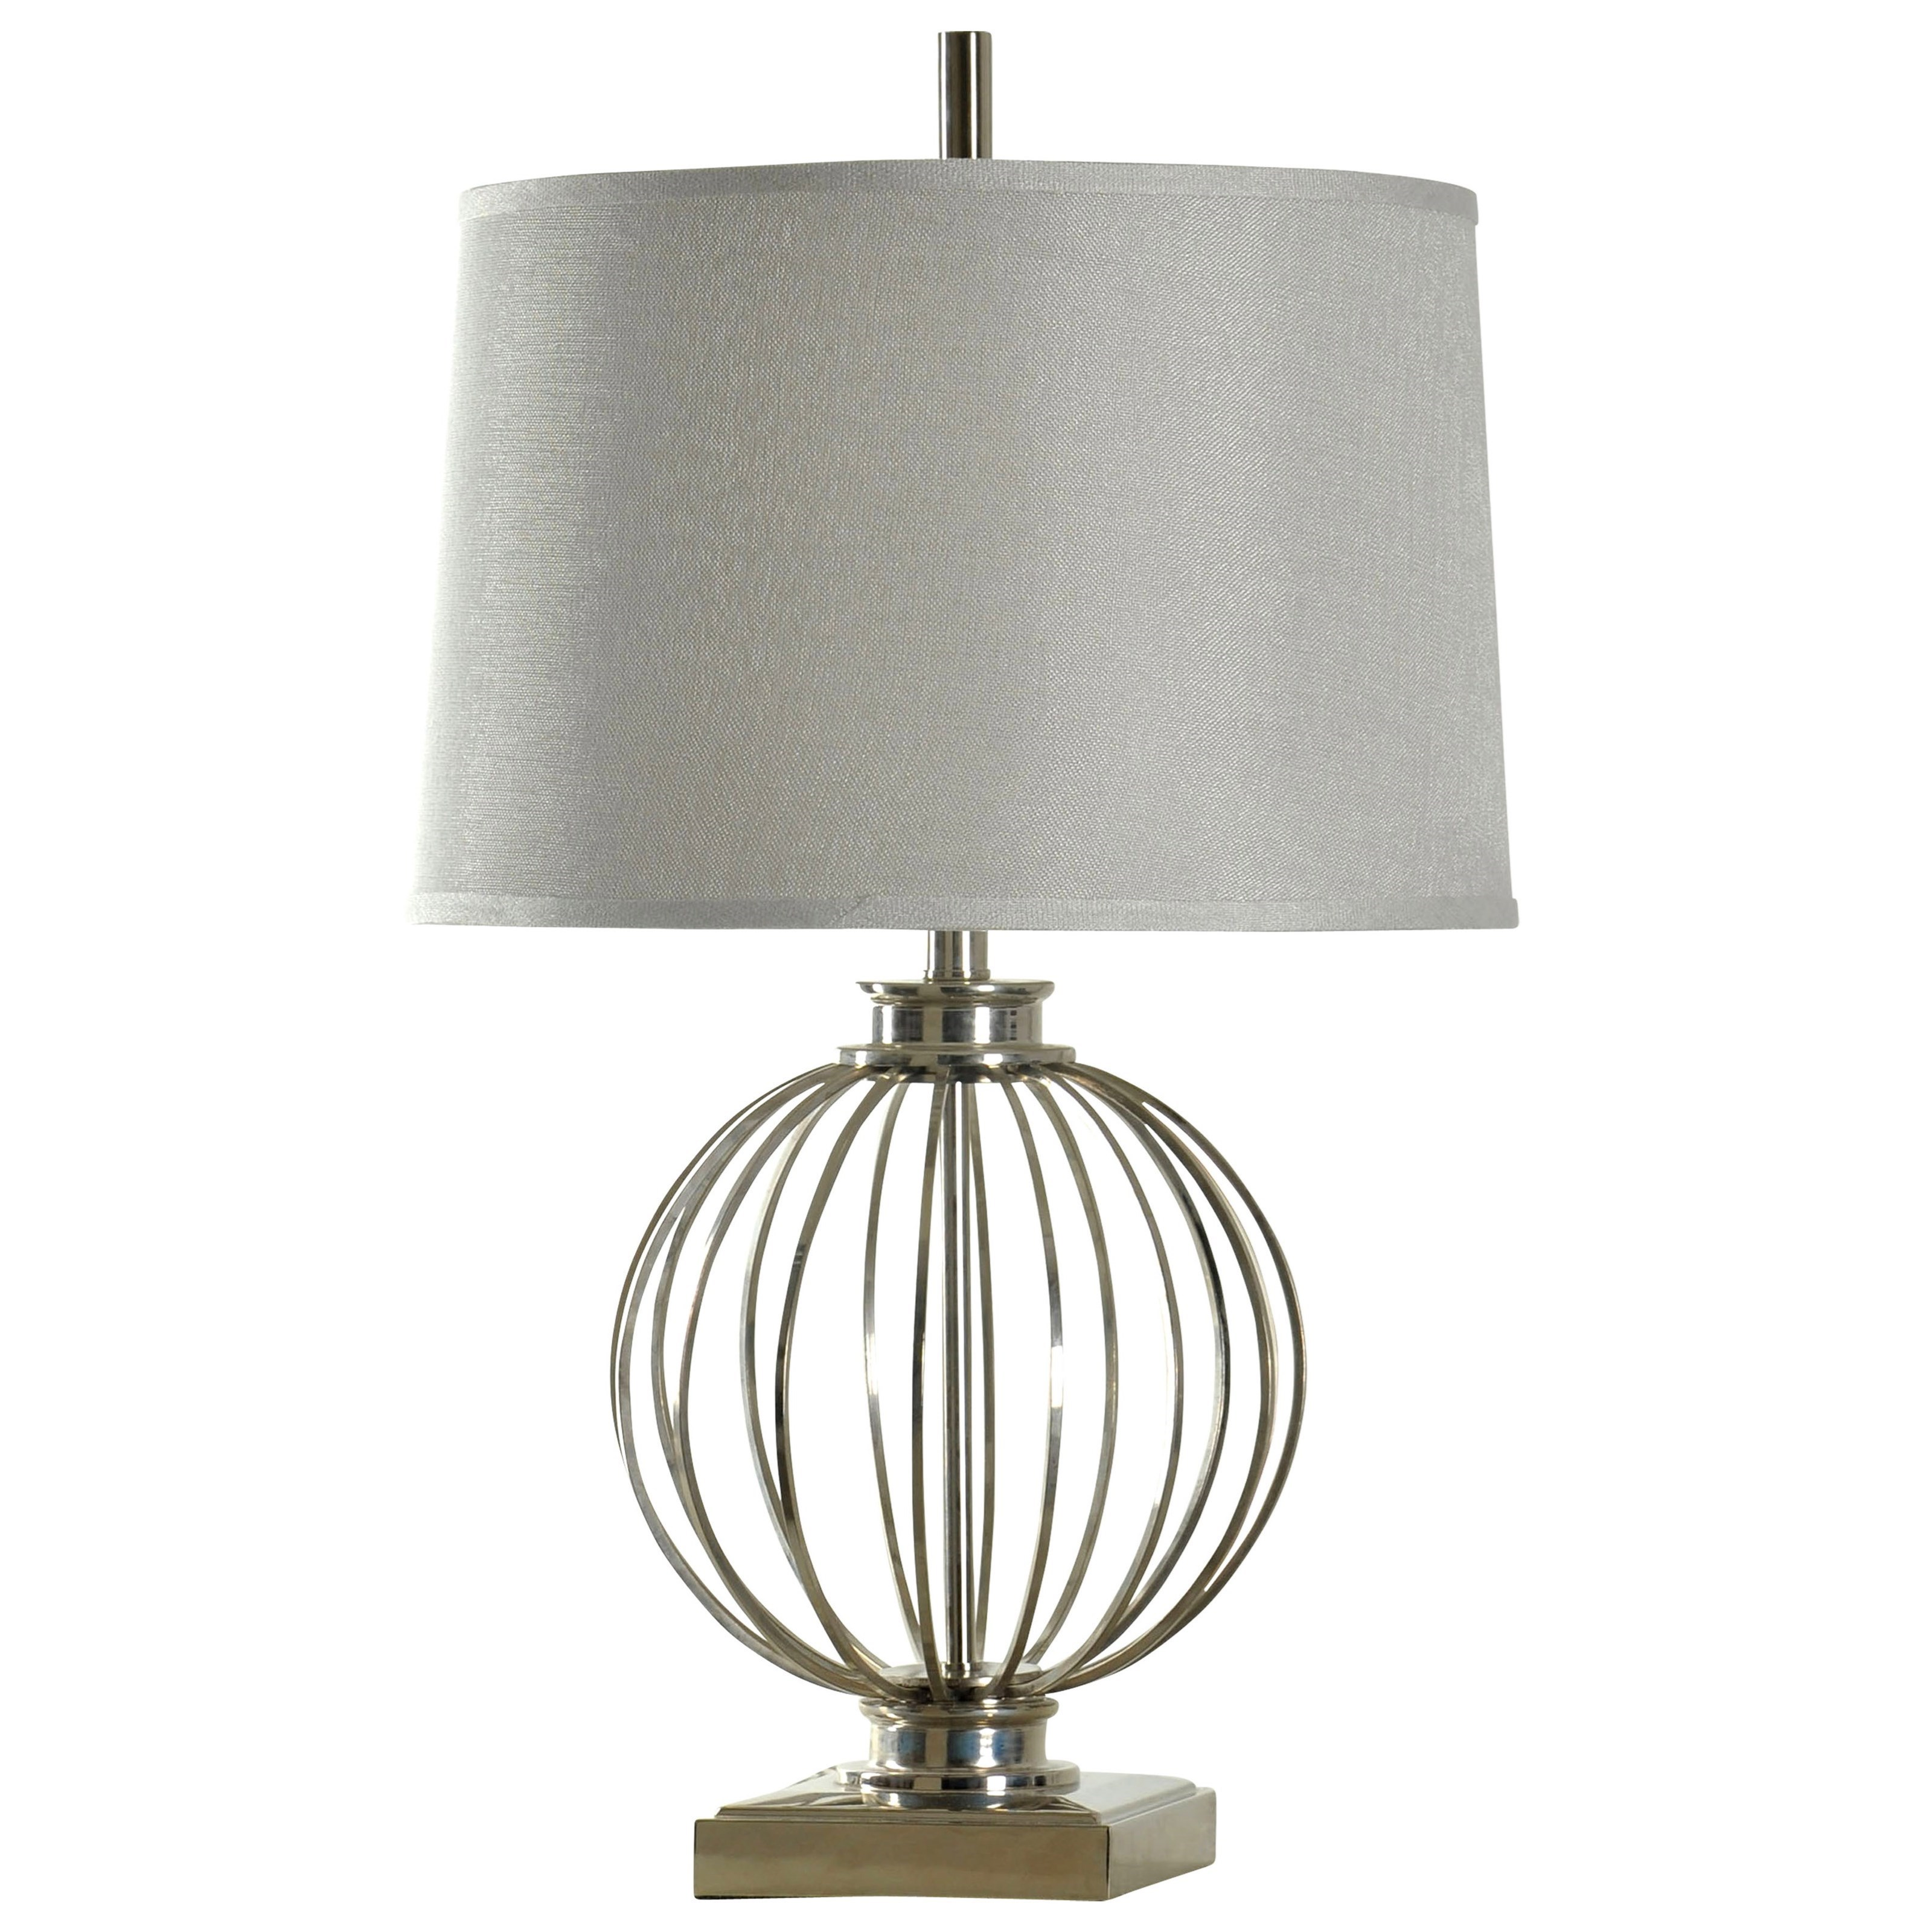 Lamps Transitional Polished Nickel Table Lamp by StyleCraft at Alison Craig Home Furnishings